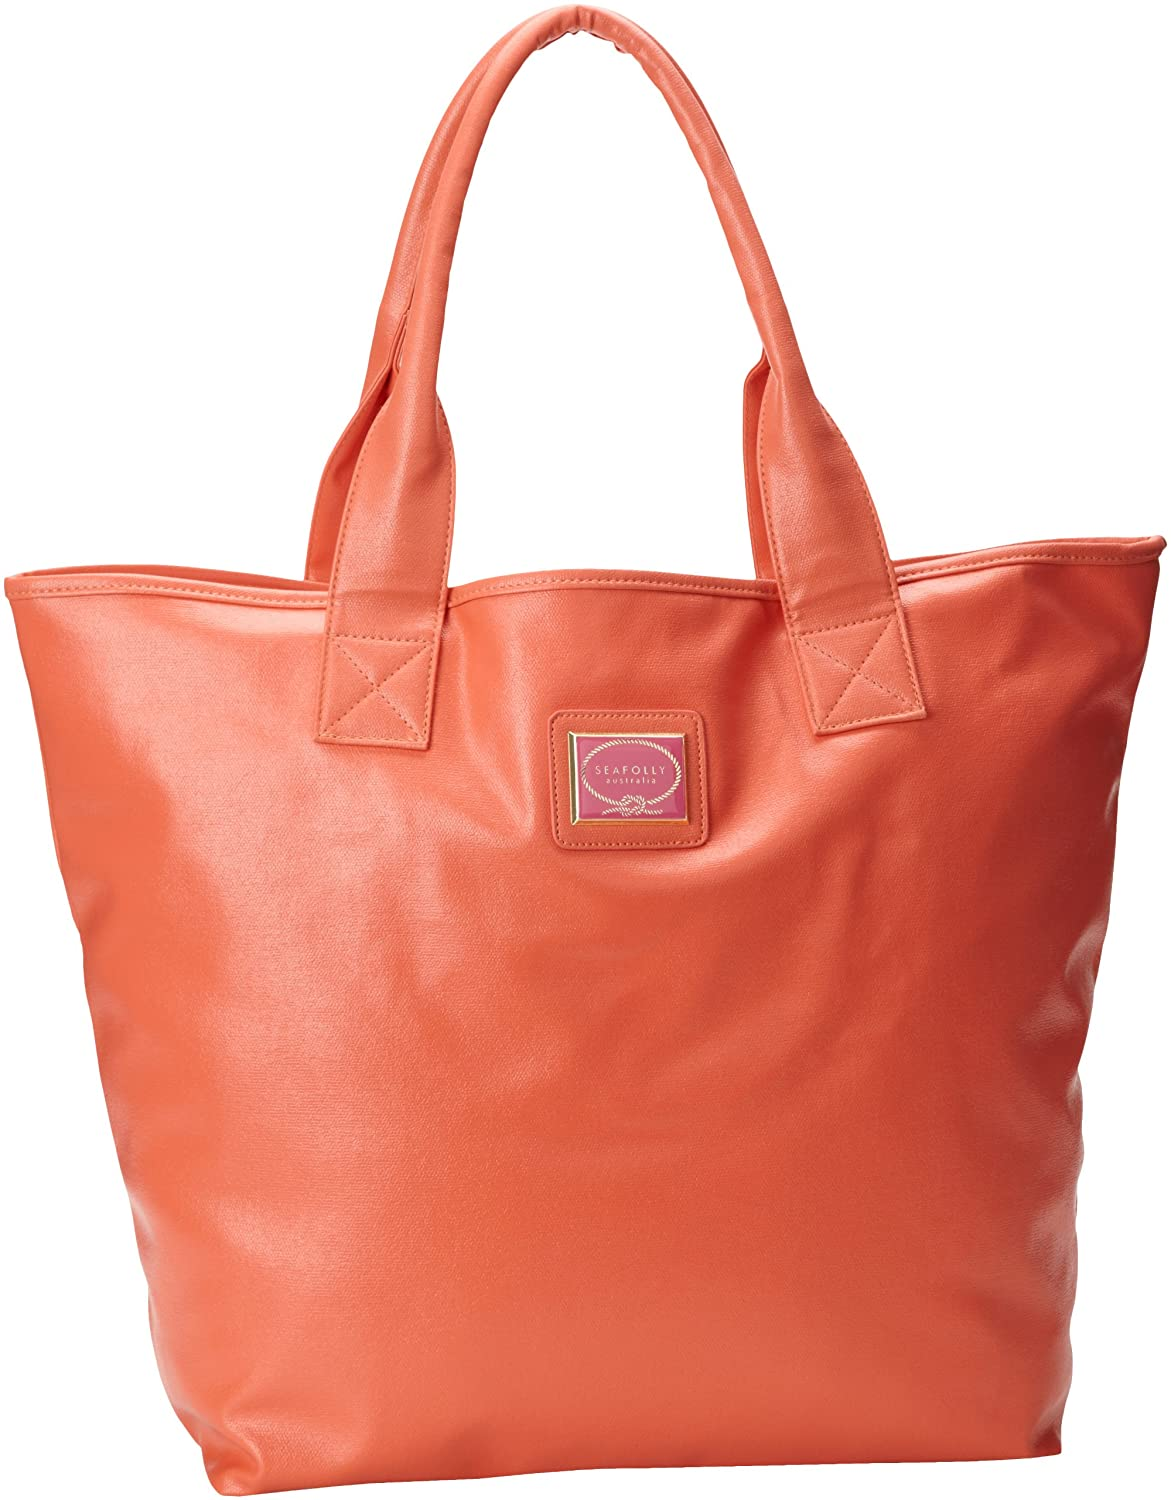 Amazon.com: Seafolly Women's Shine On Tote Bag, Coral, One Size ...